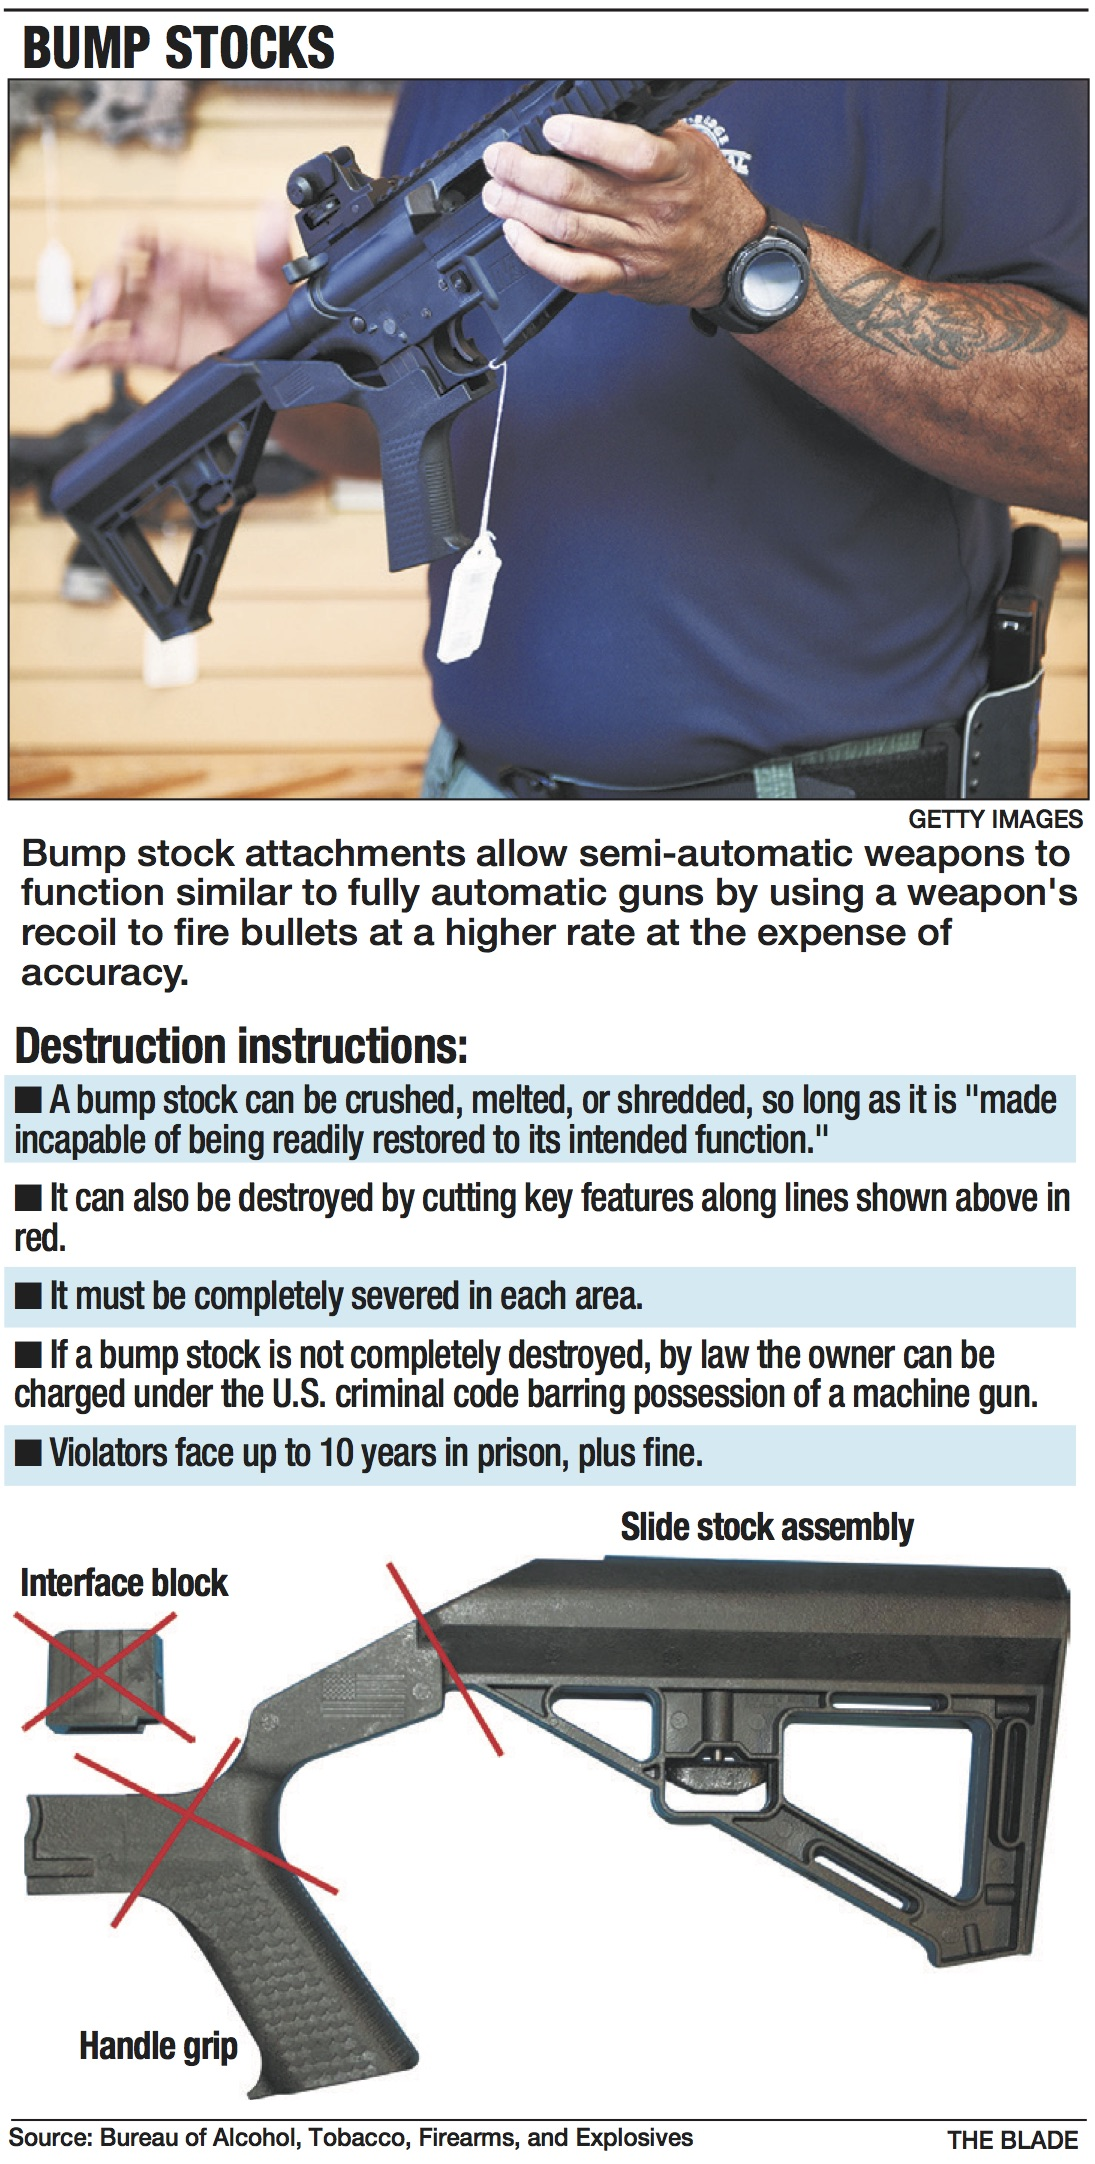 Bump stocks illegal now, but few, if any, local owners have